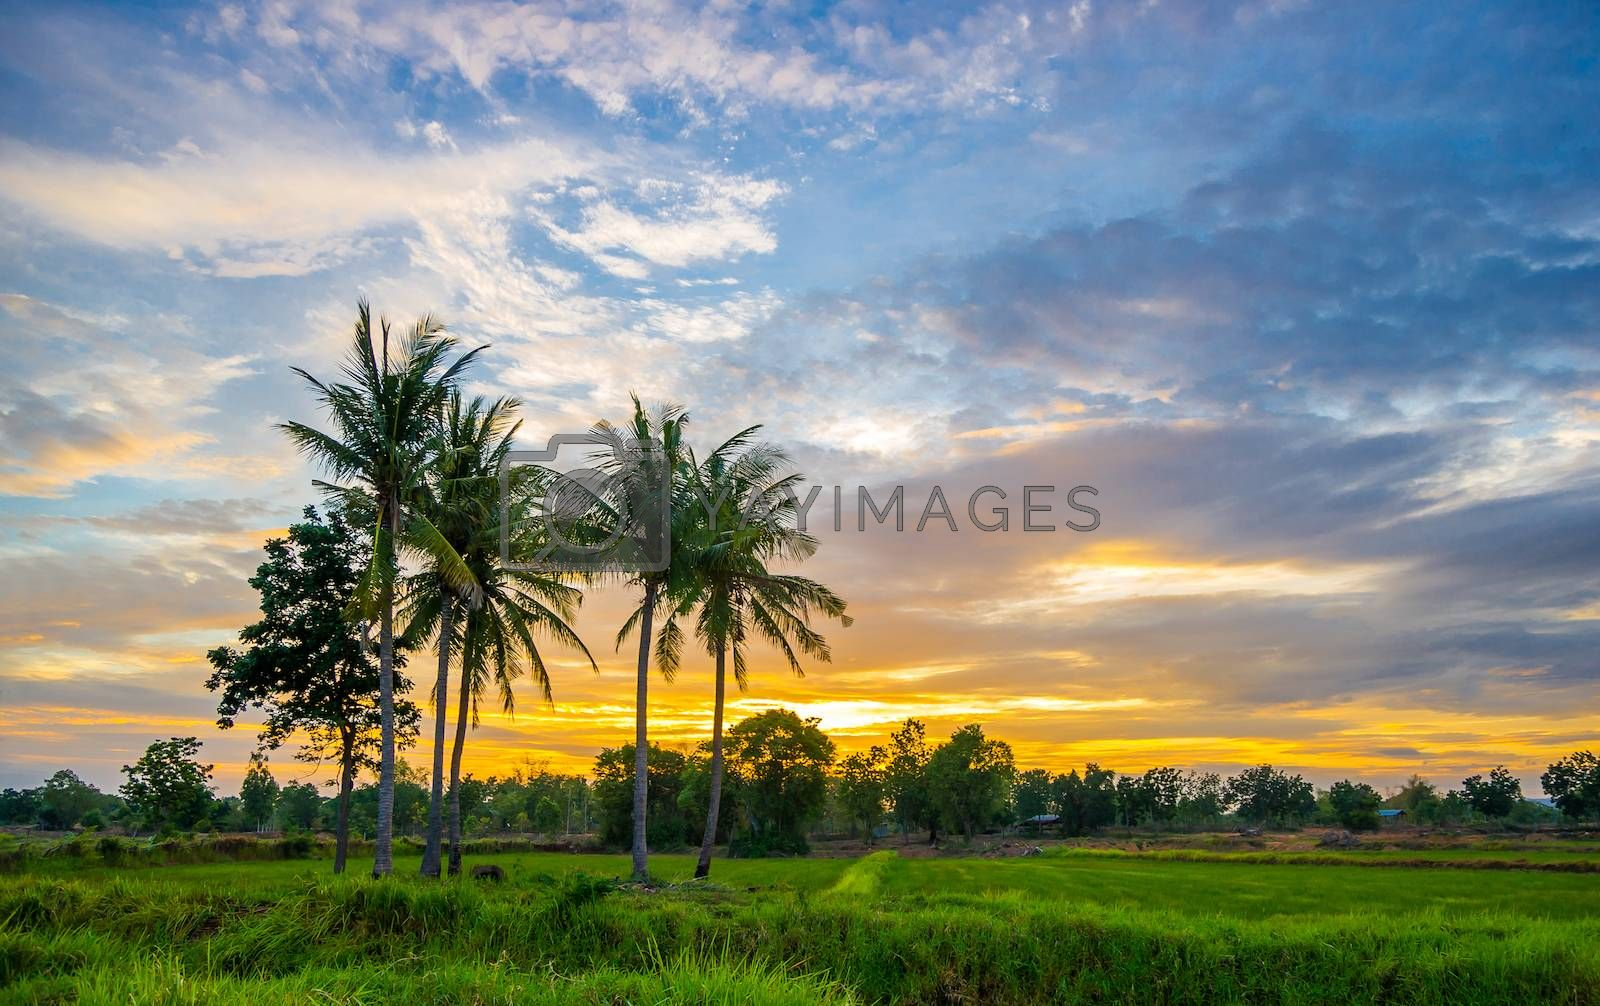 Lanscape sunset in the countryside of Thailand.